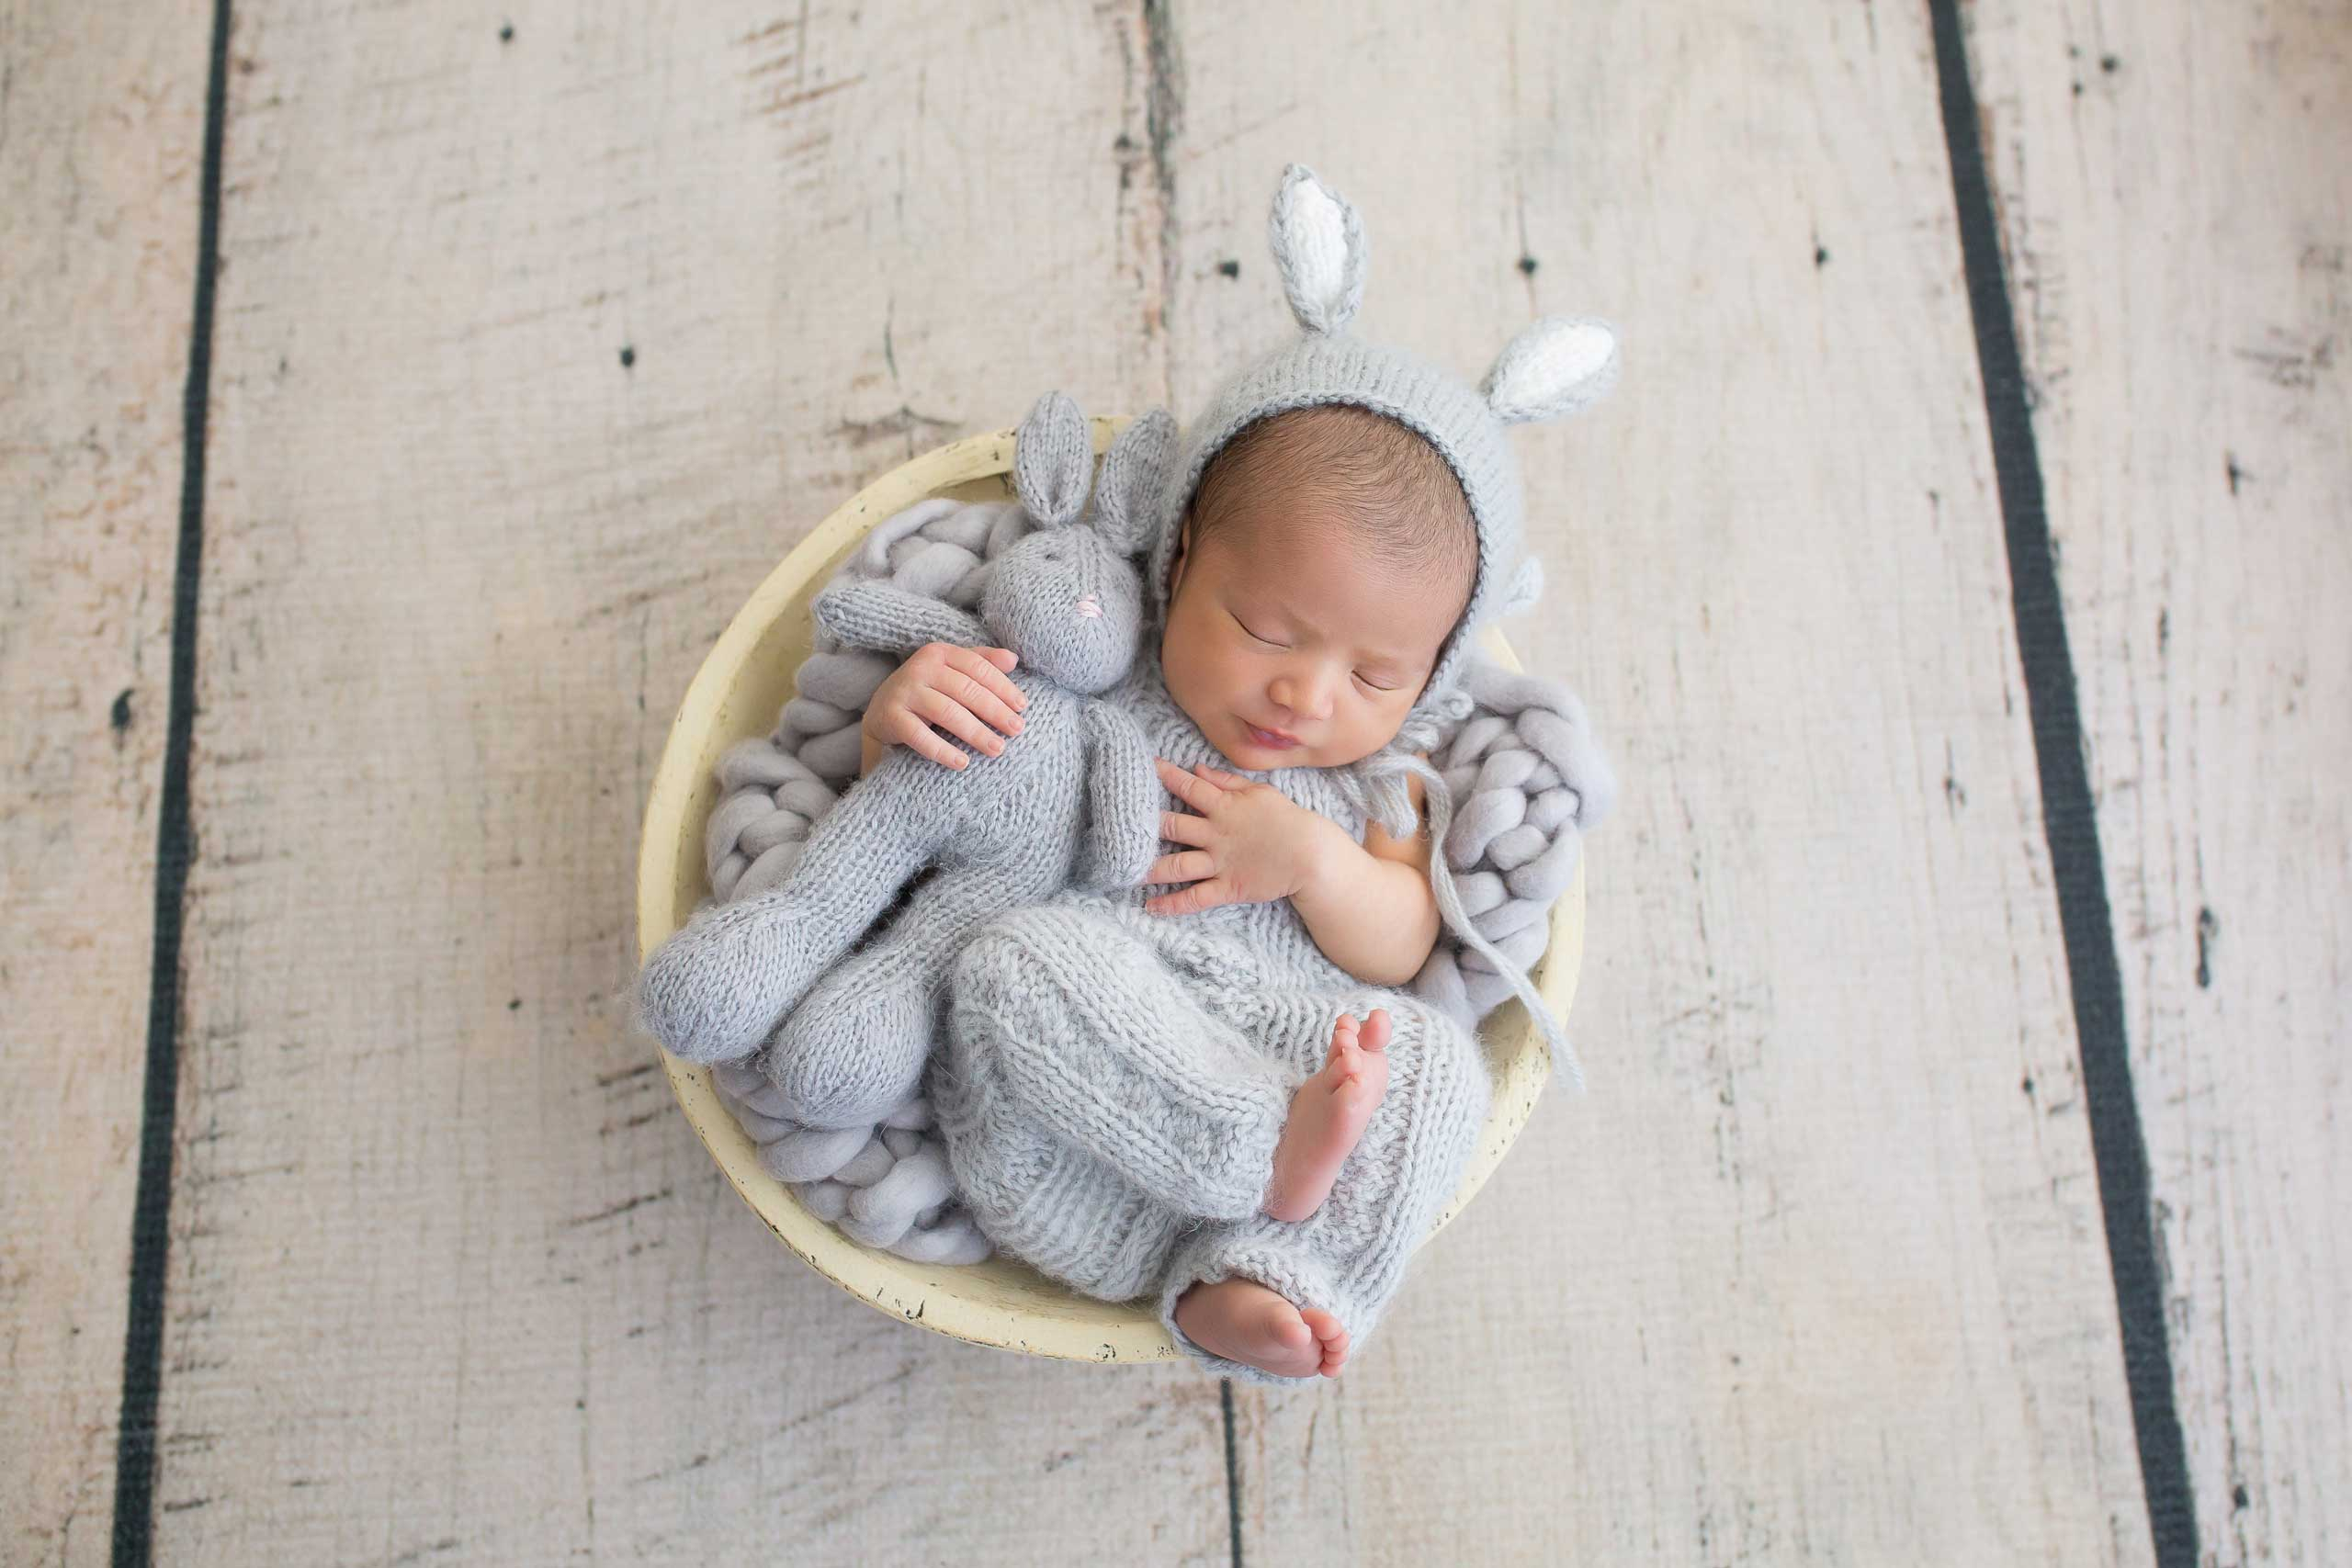 baby newborn and bunny photograph taken in Los Angeles by Ramina Magid Photography